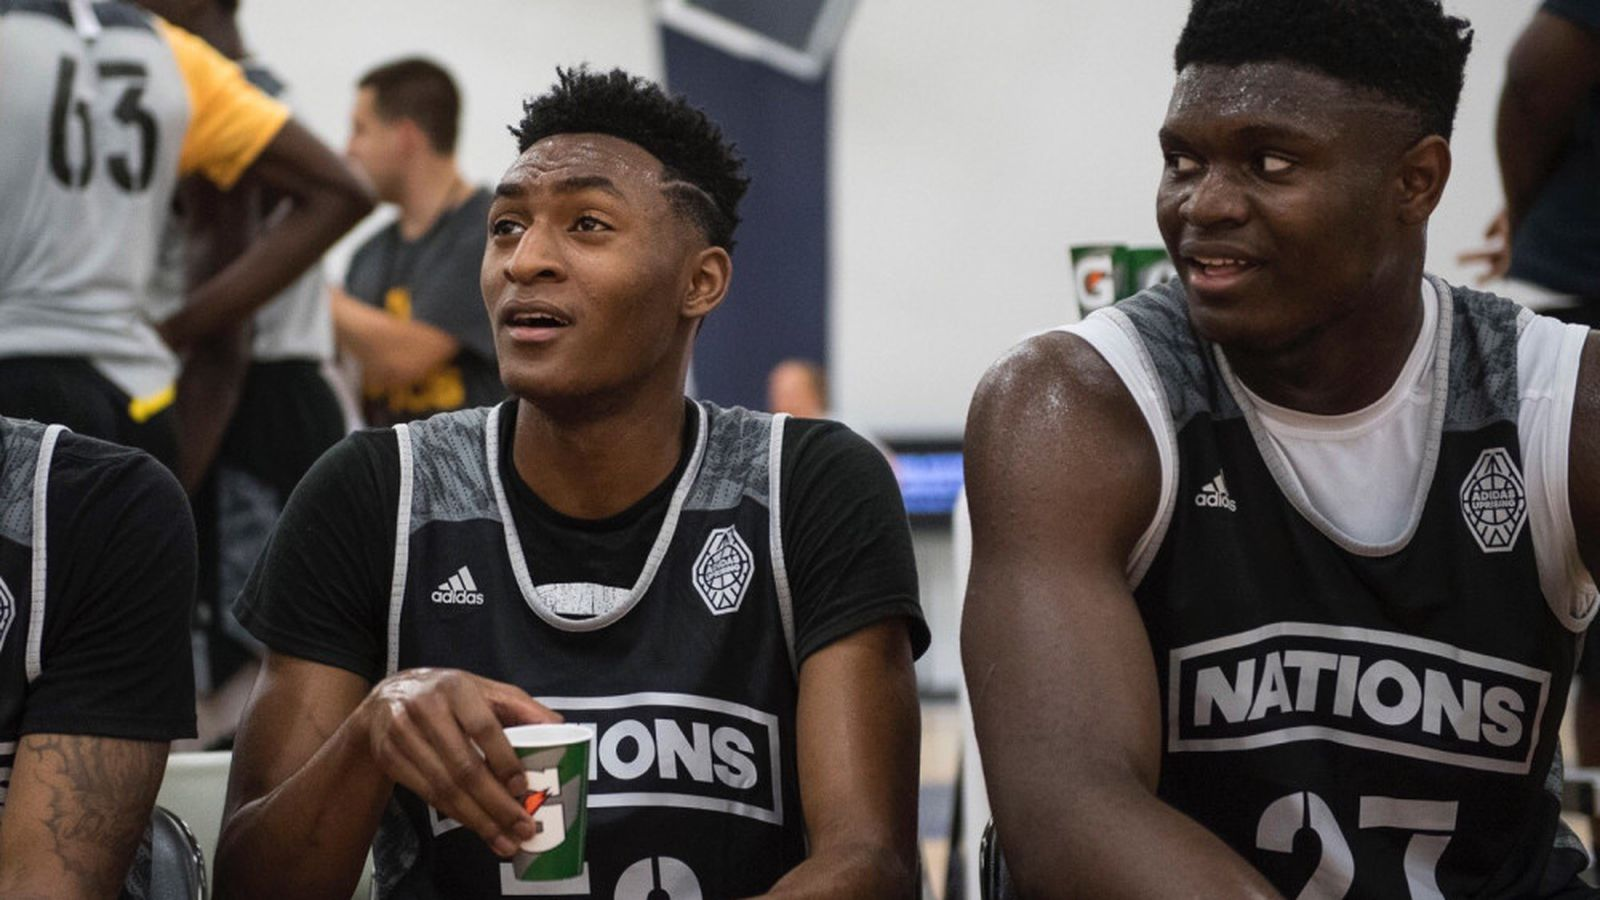 Zion-immanuel-adidas-nations.0.0